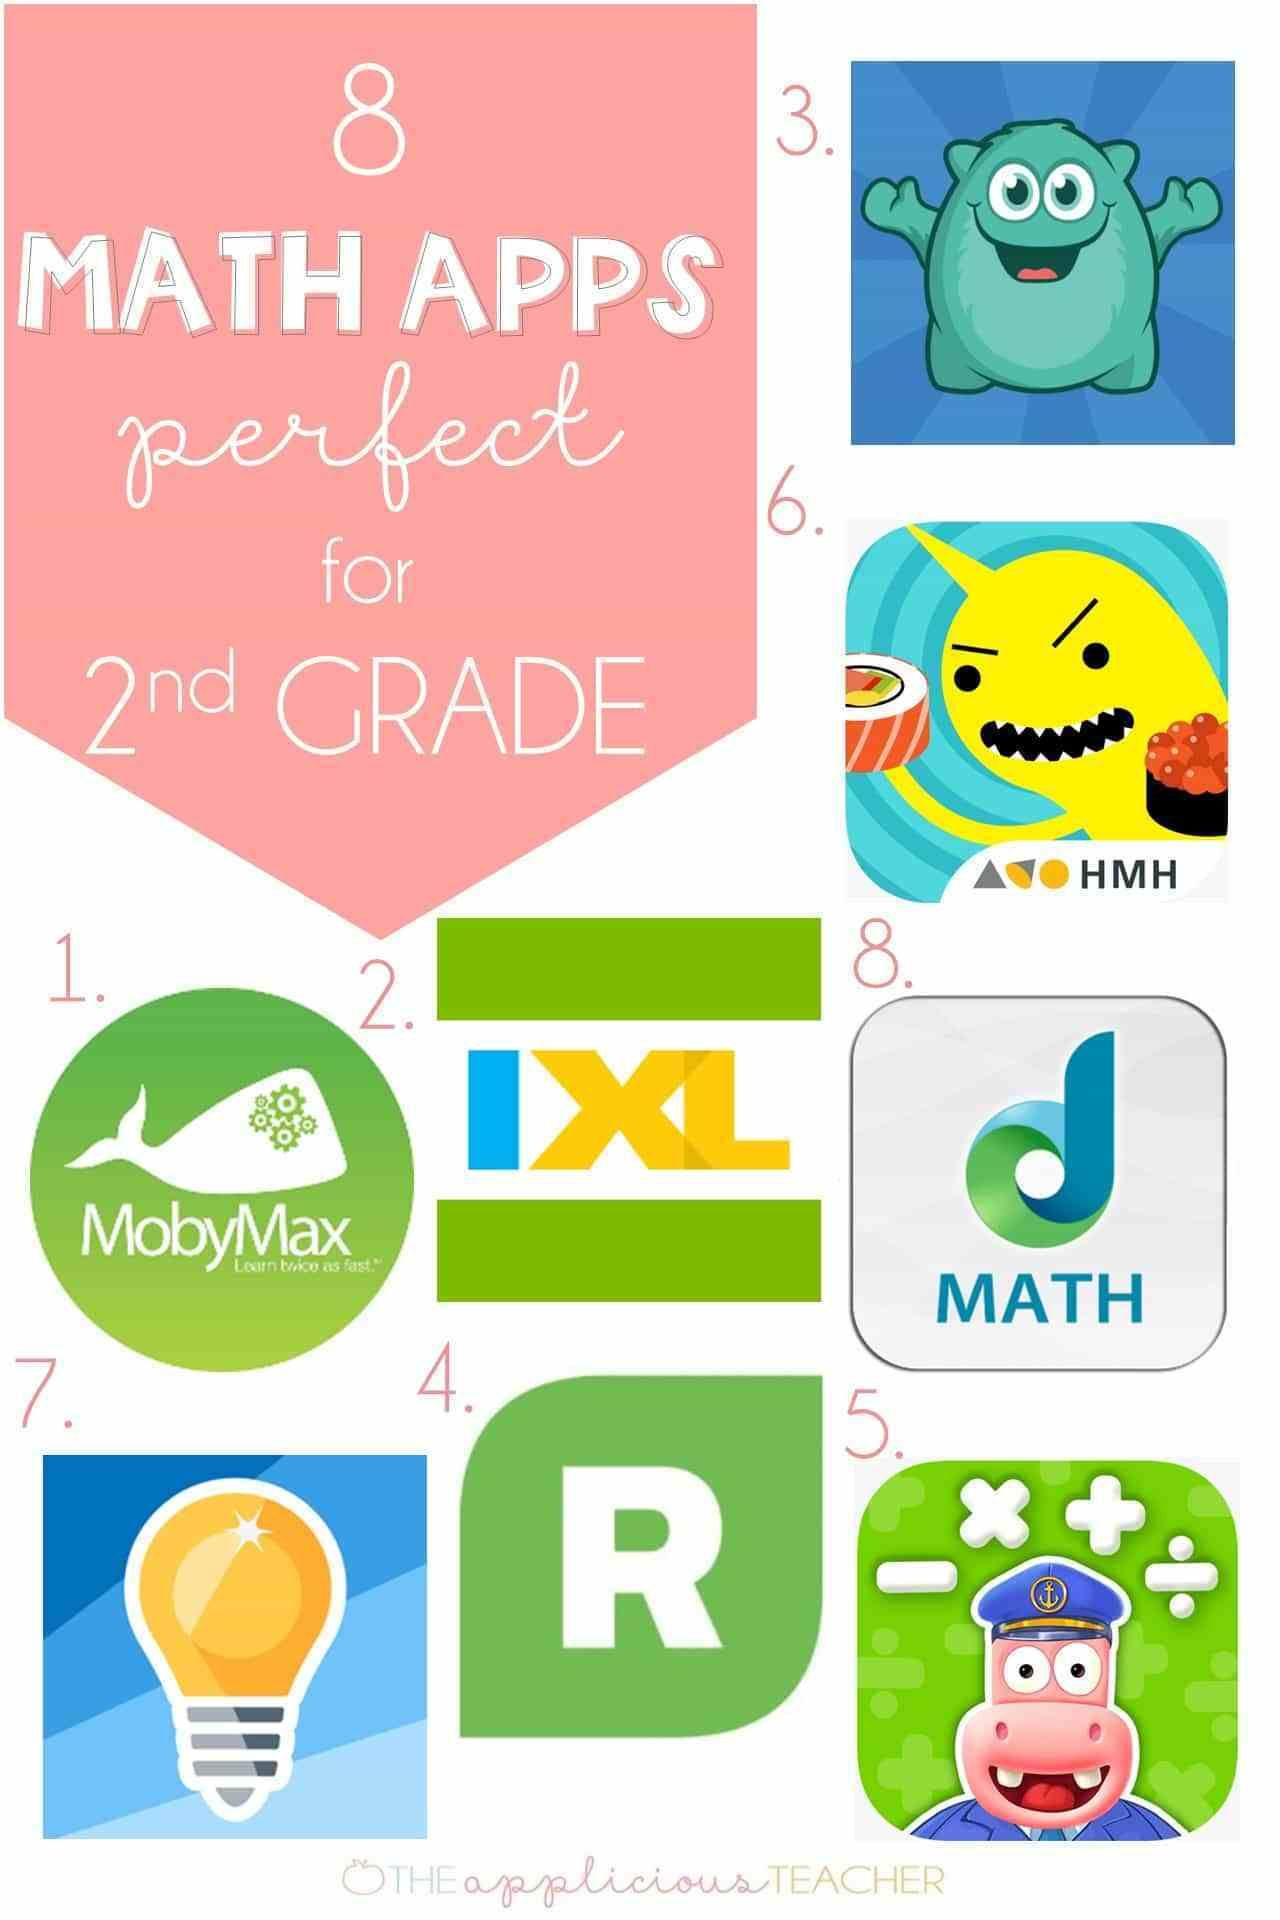 8 Math Apps that are Perfect for 2nd Grade in 2020 (With